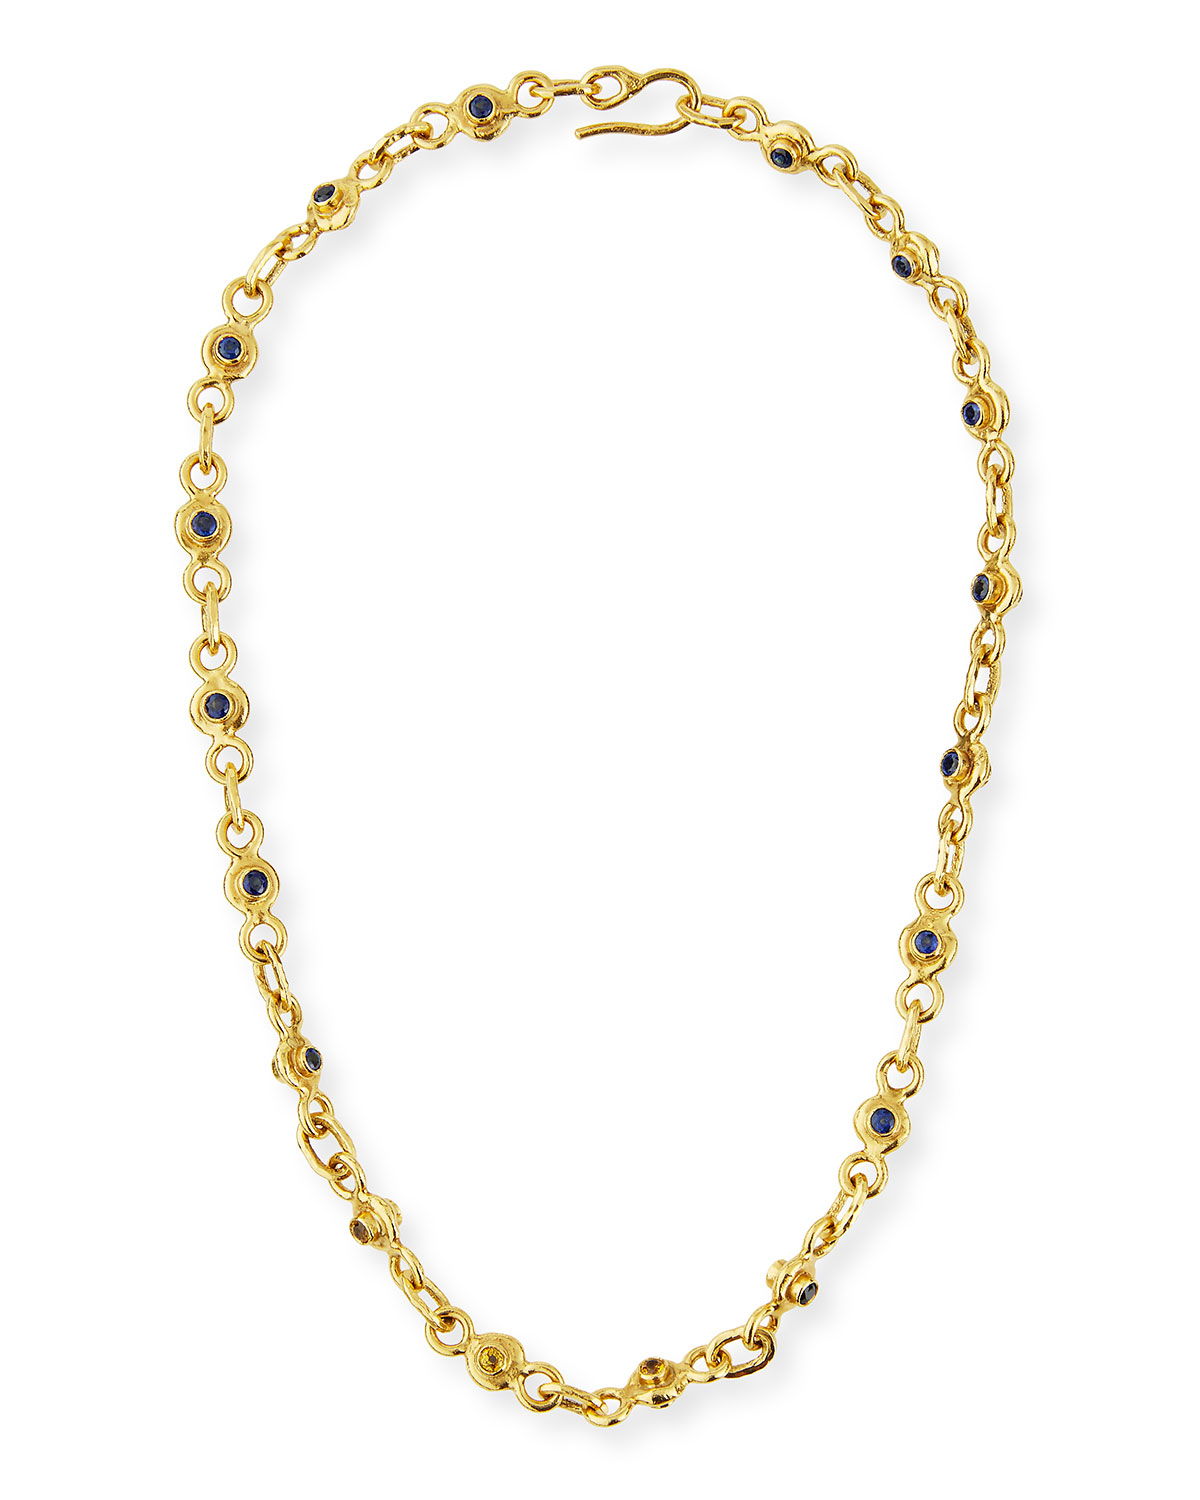 JEAN MAHIE 22K Gold Blue & Yellow Sapphire Necklace, 19""